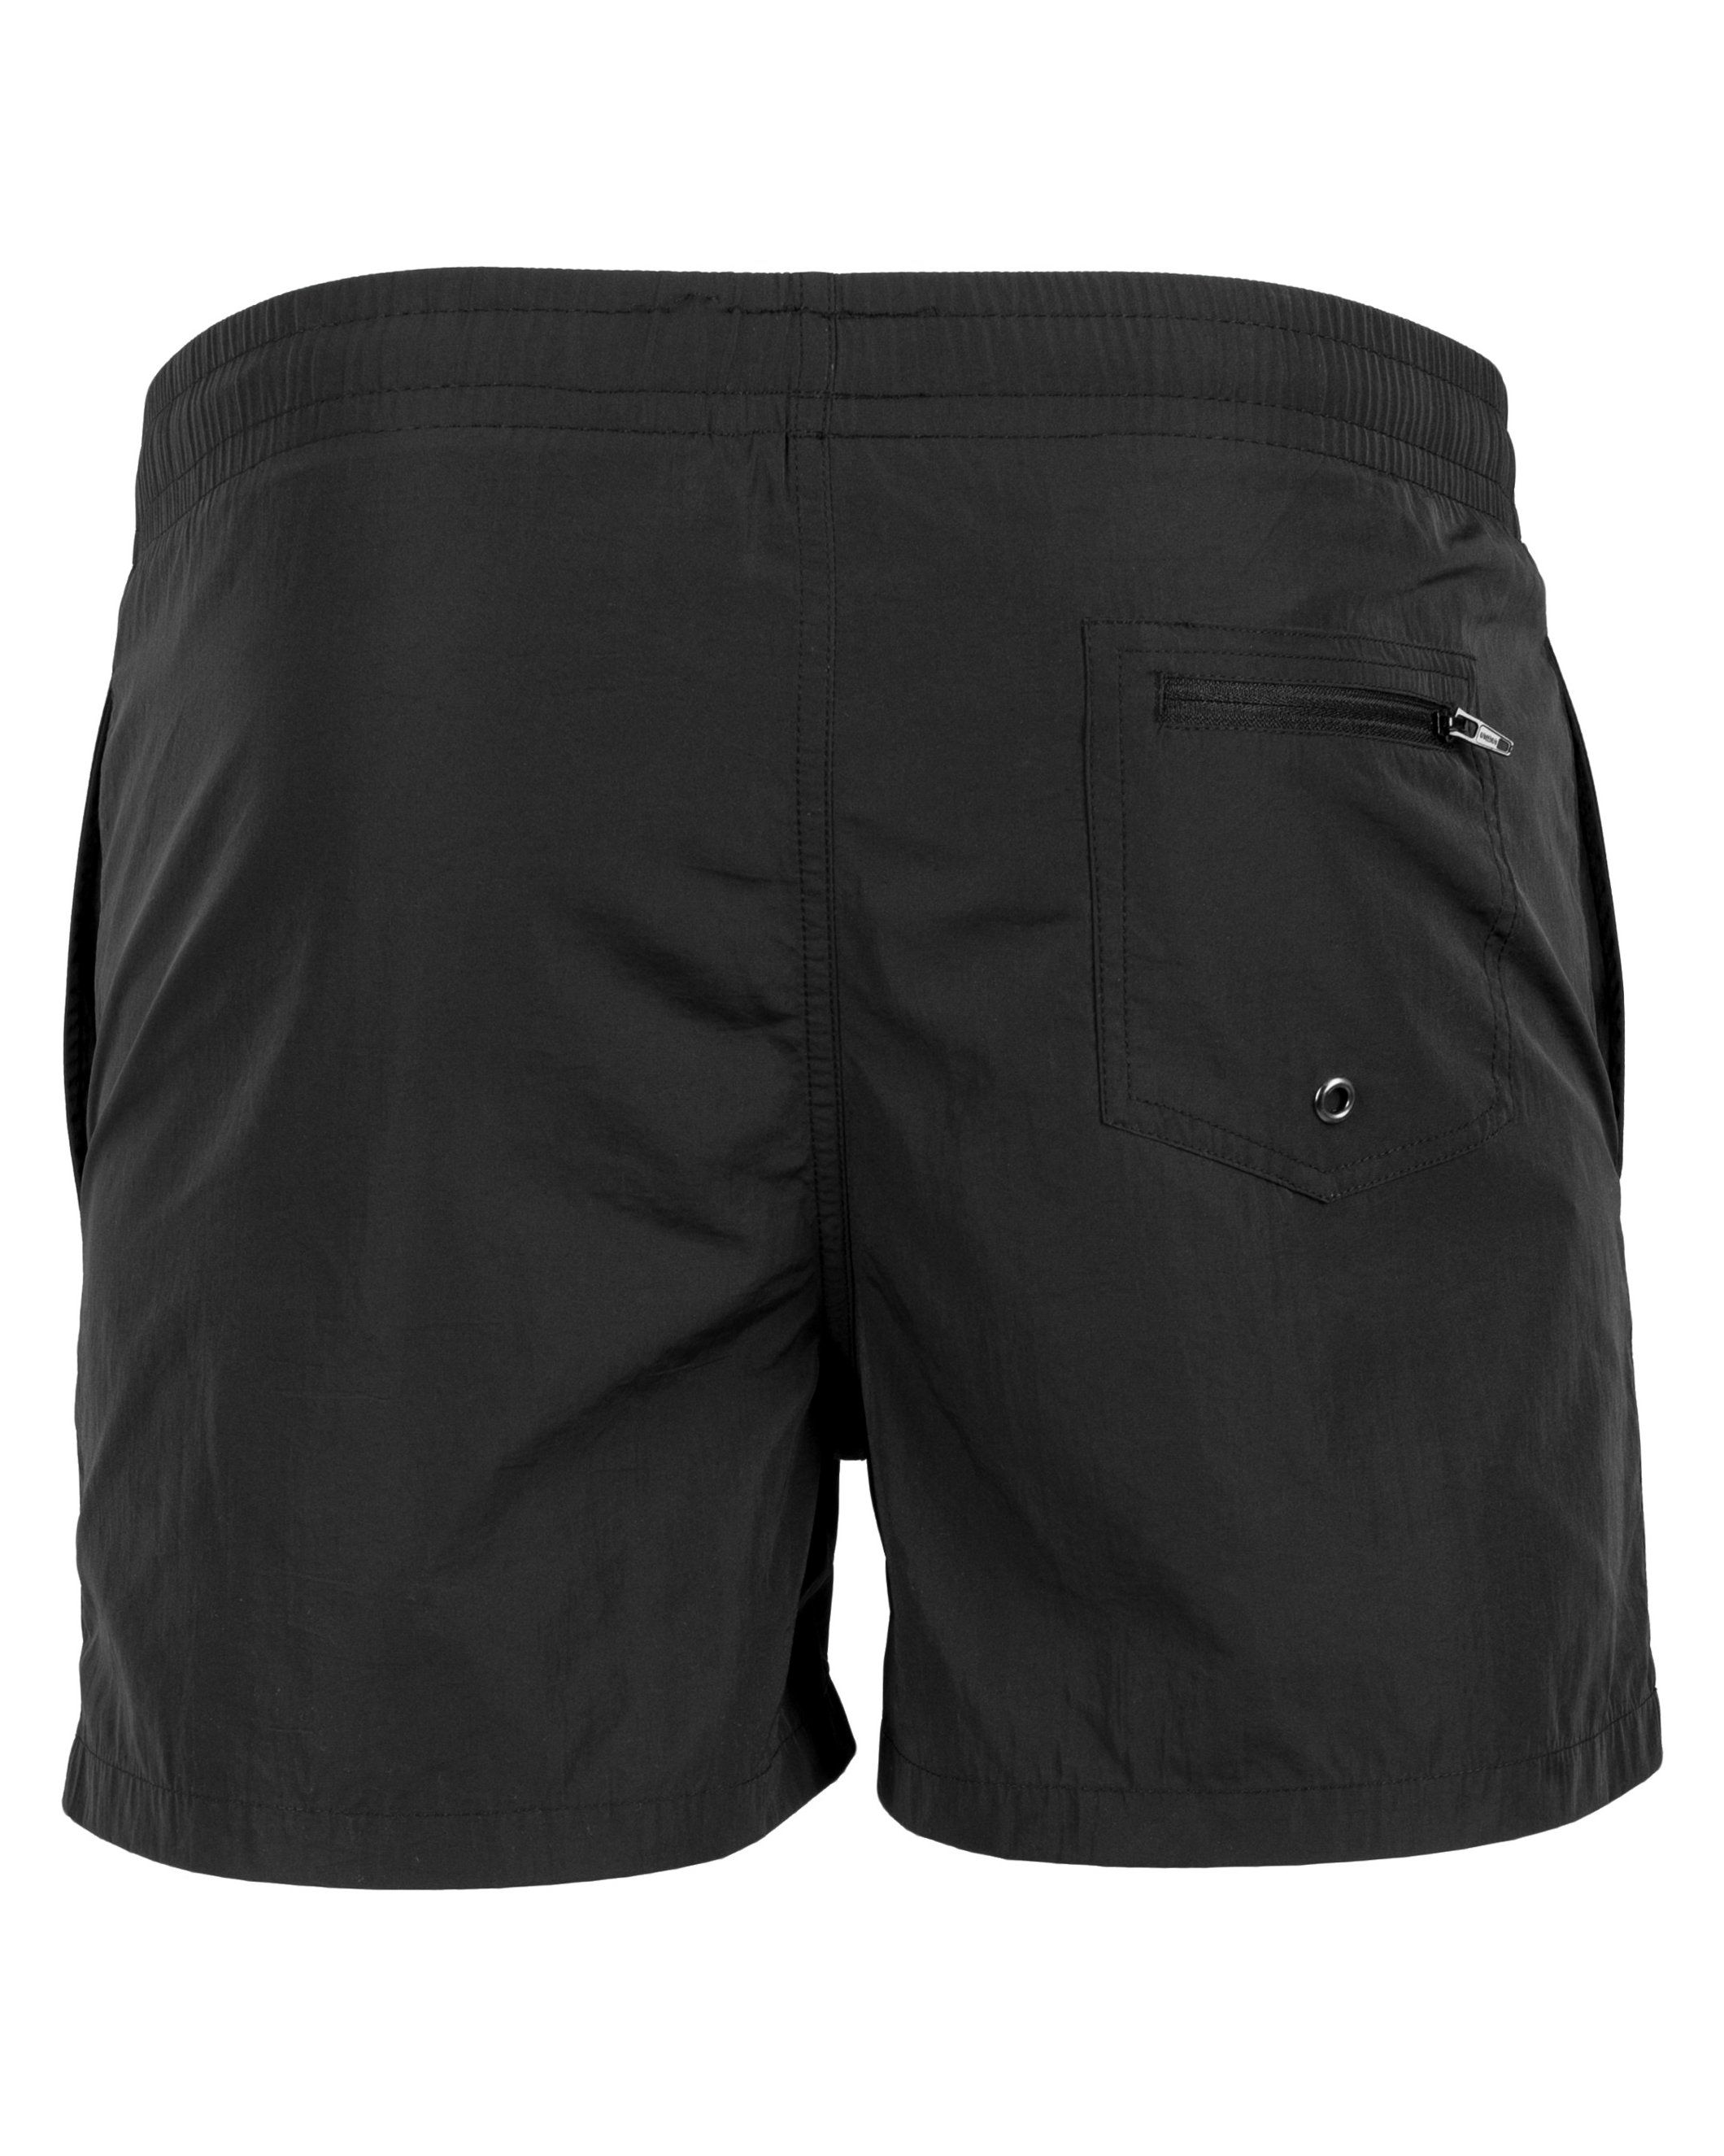 Excite Swim Short